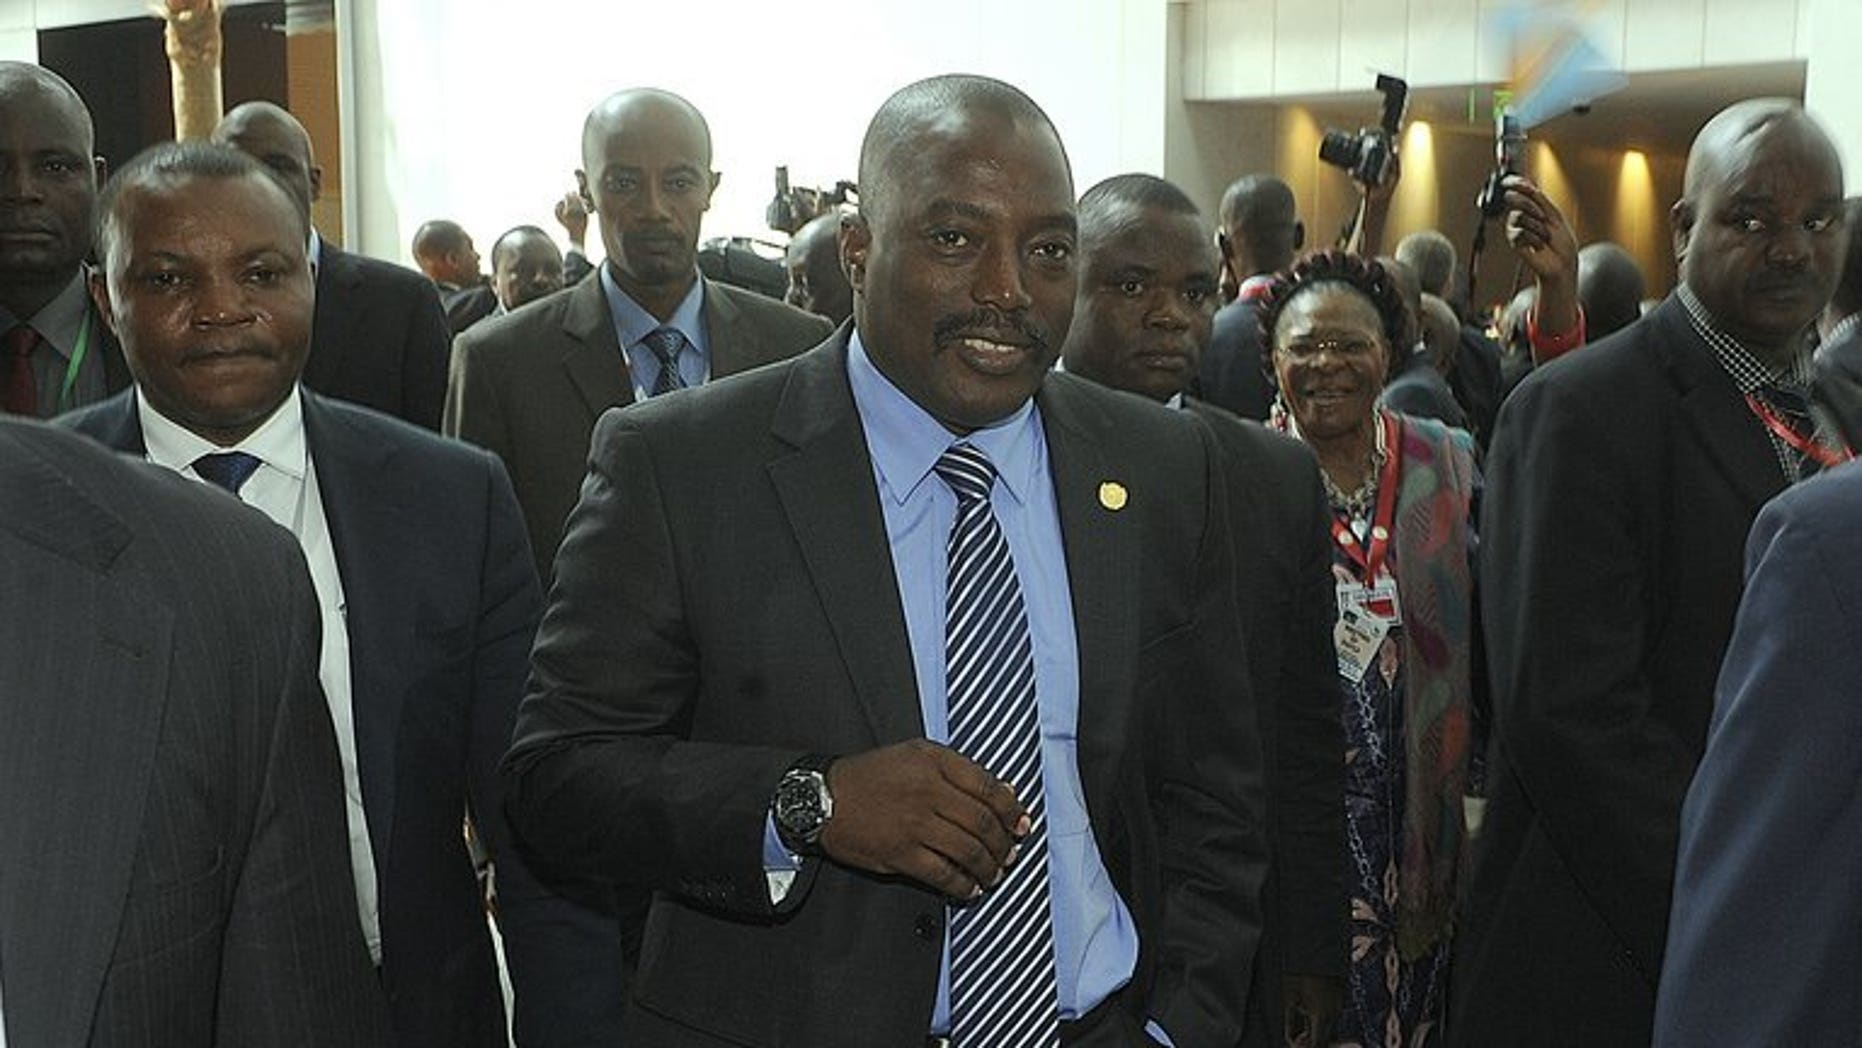 """DR Congo President Joseph Kabila (C), seen at the 50th African Union Anniversary Summit in Addis Ababa on May 26, 20113. Opposition parties in the DR Congo have rejected an offer of """"national consultations"""" made by Kabila, they said in a joint statement."""